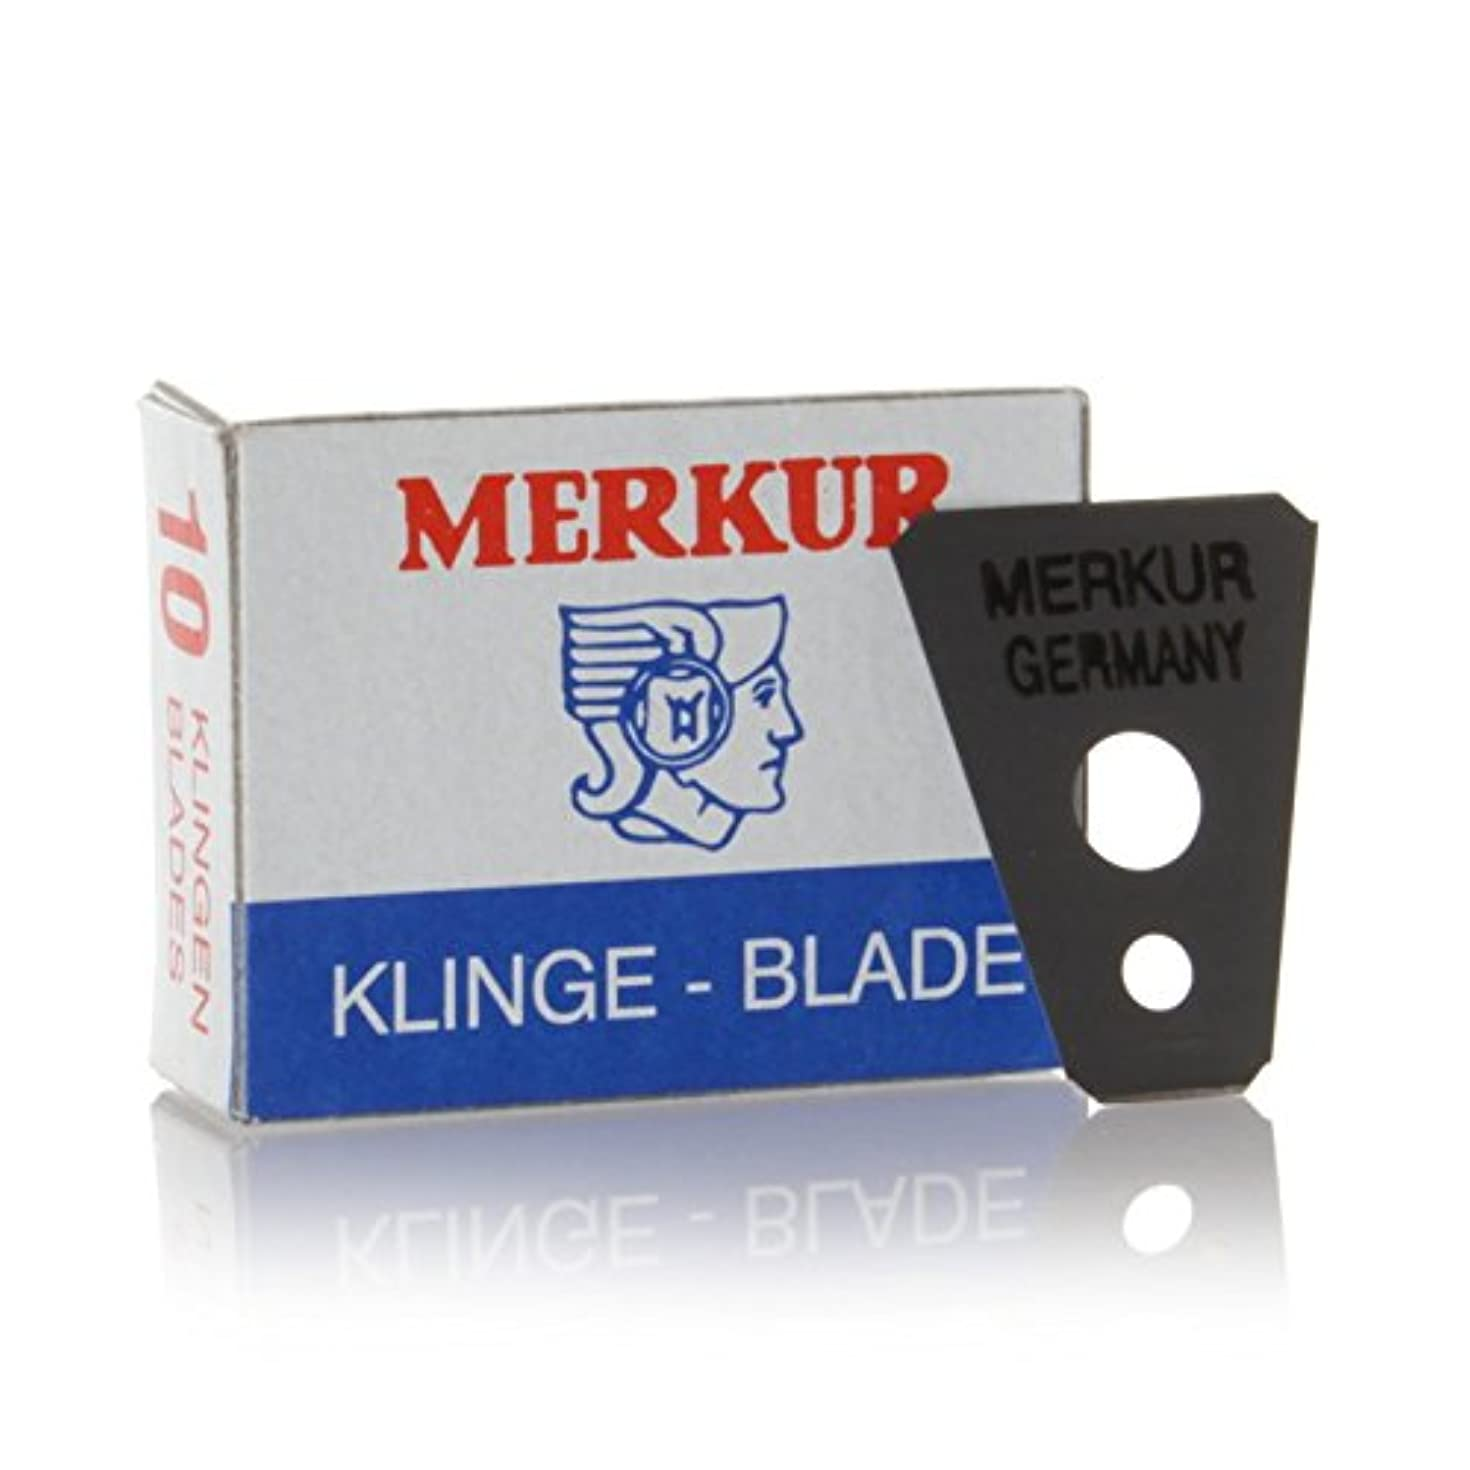 急流ラオス人する必要があるMERKUR Solingen - Razor blades for moustache shaver, 10 pieces, 90908100